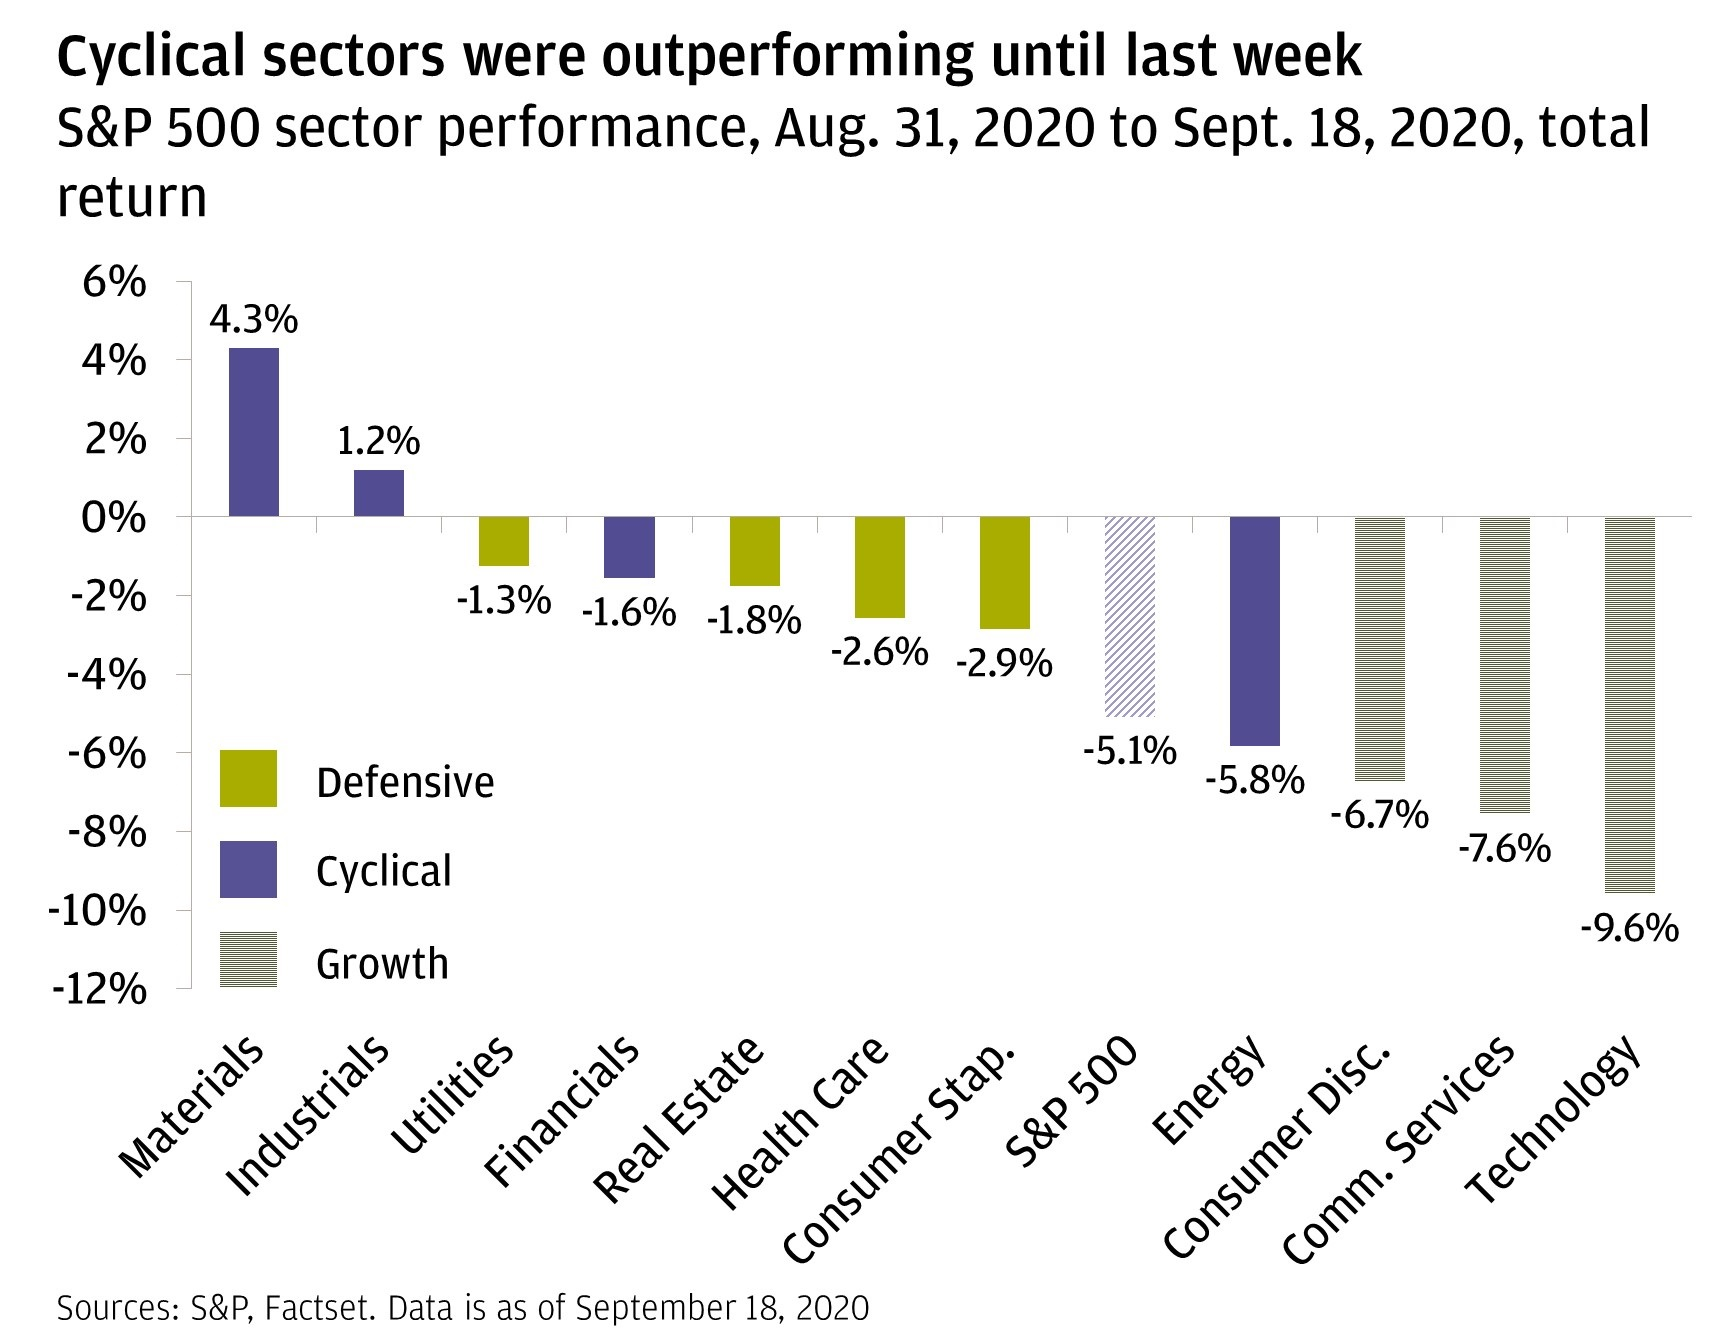 The bar chart shows S&P sector performance from August 31 to September 18, 2020, across defensive, cyclical and growth sectors. The chart shows that the three worst performing sectors were growth sectors and the two highest performing sectors were cyclical sectors.